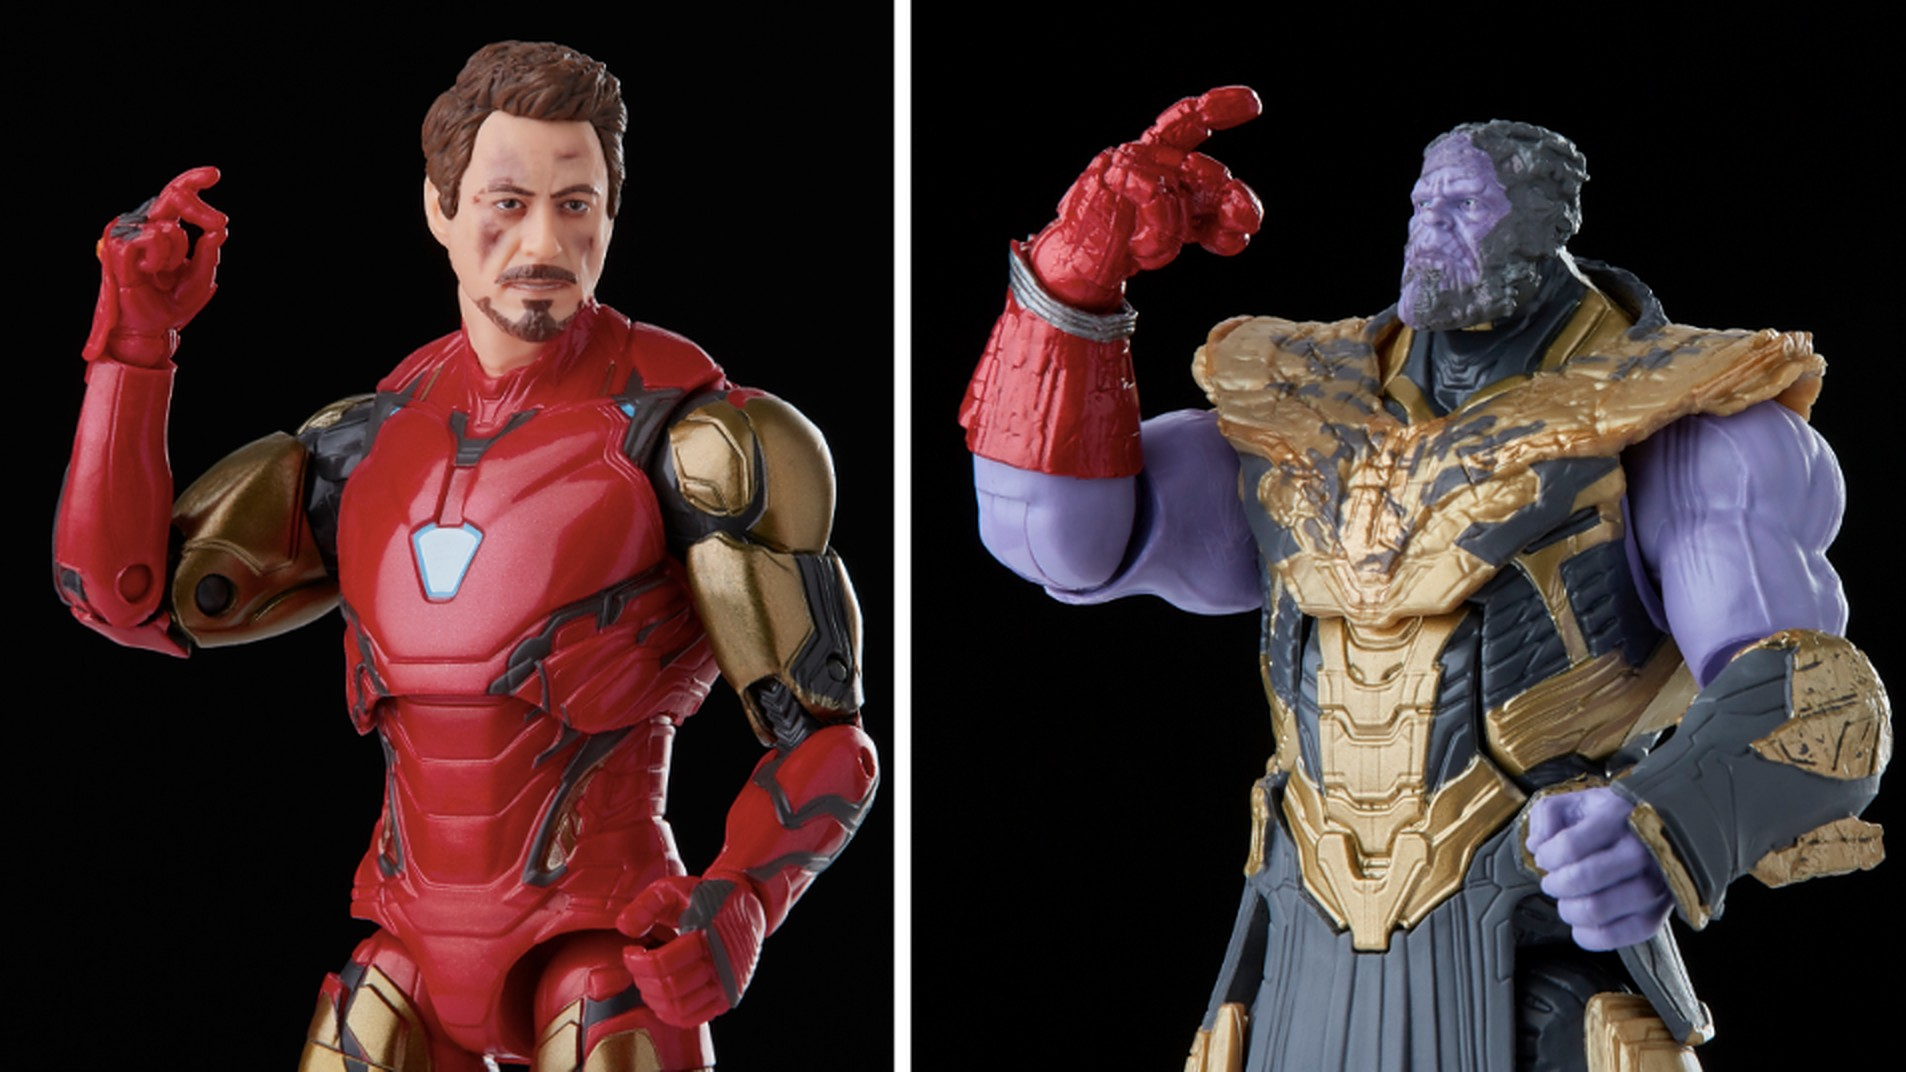 Marvel Legends: Iron Man vs. Thanos 2-pack and Odin MCU figures revealed